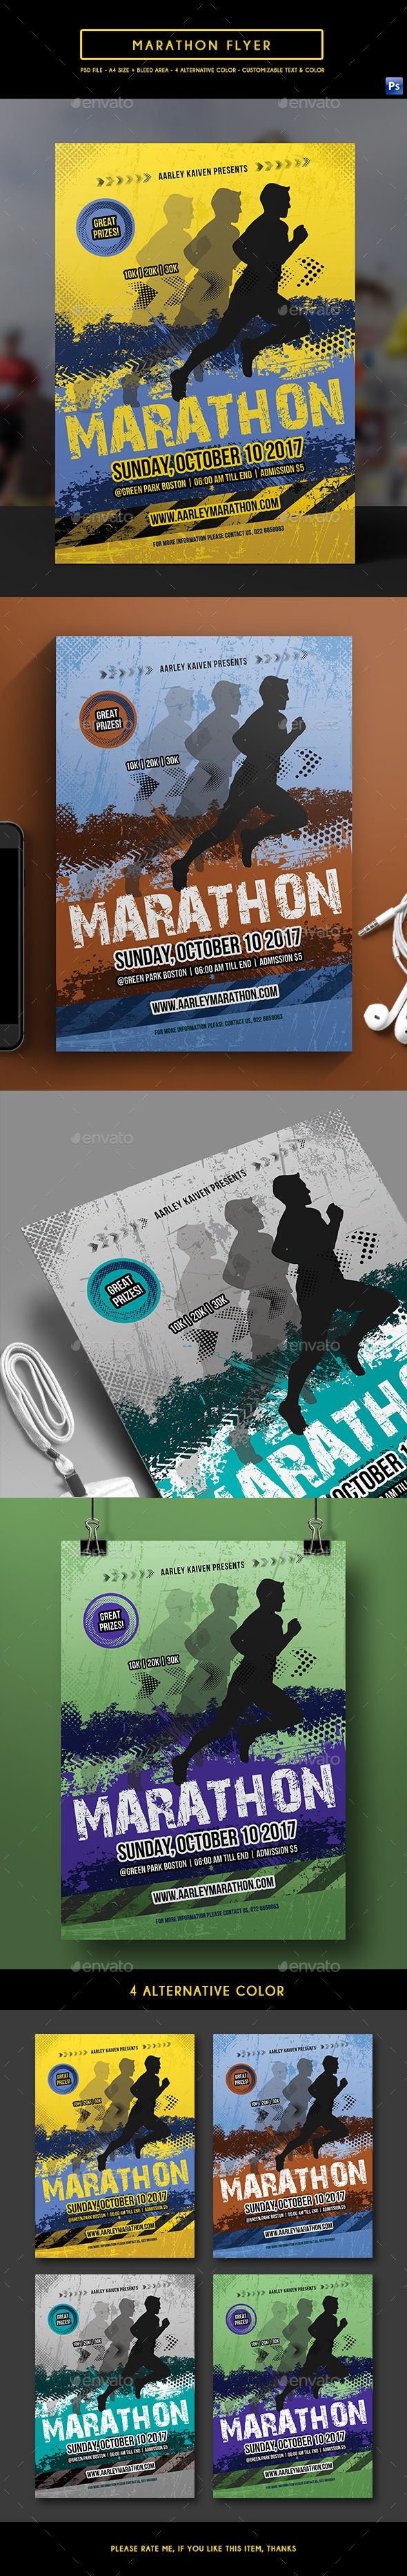 Marathon Event Flyer Template PSD. Download here: https://graphicriver.net/item/marathon-event-flyer/17405088?ref=ksioks